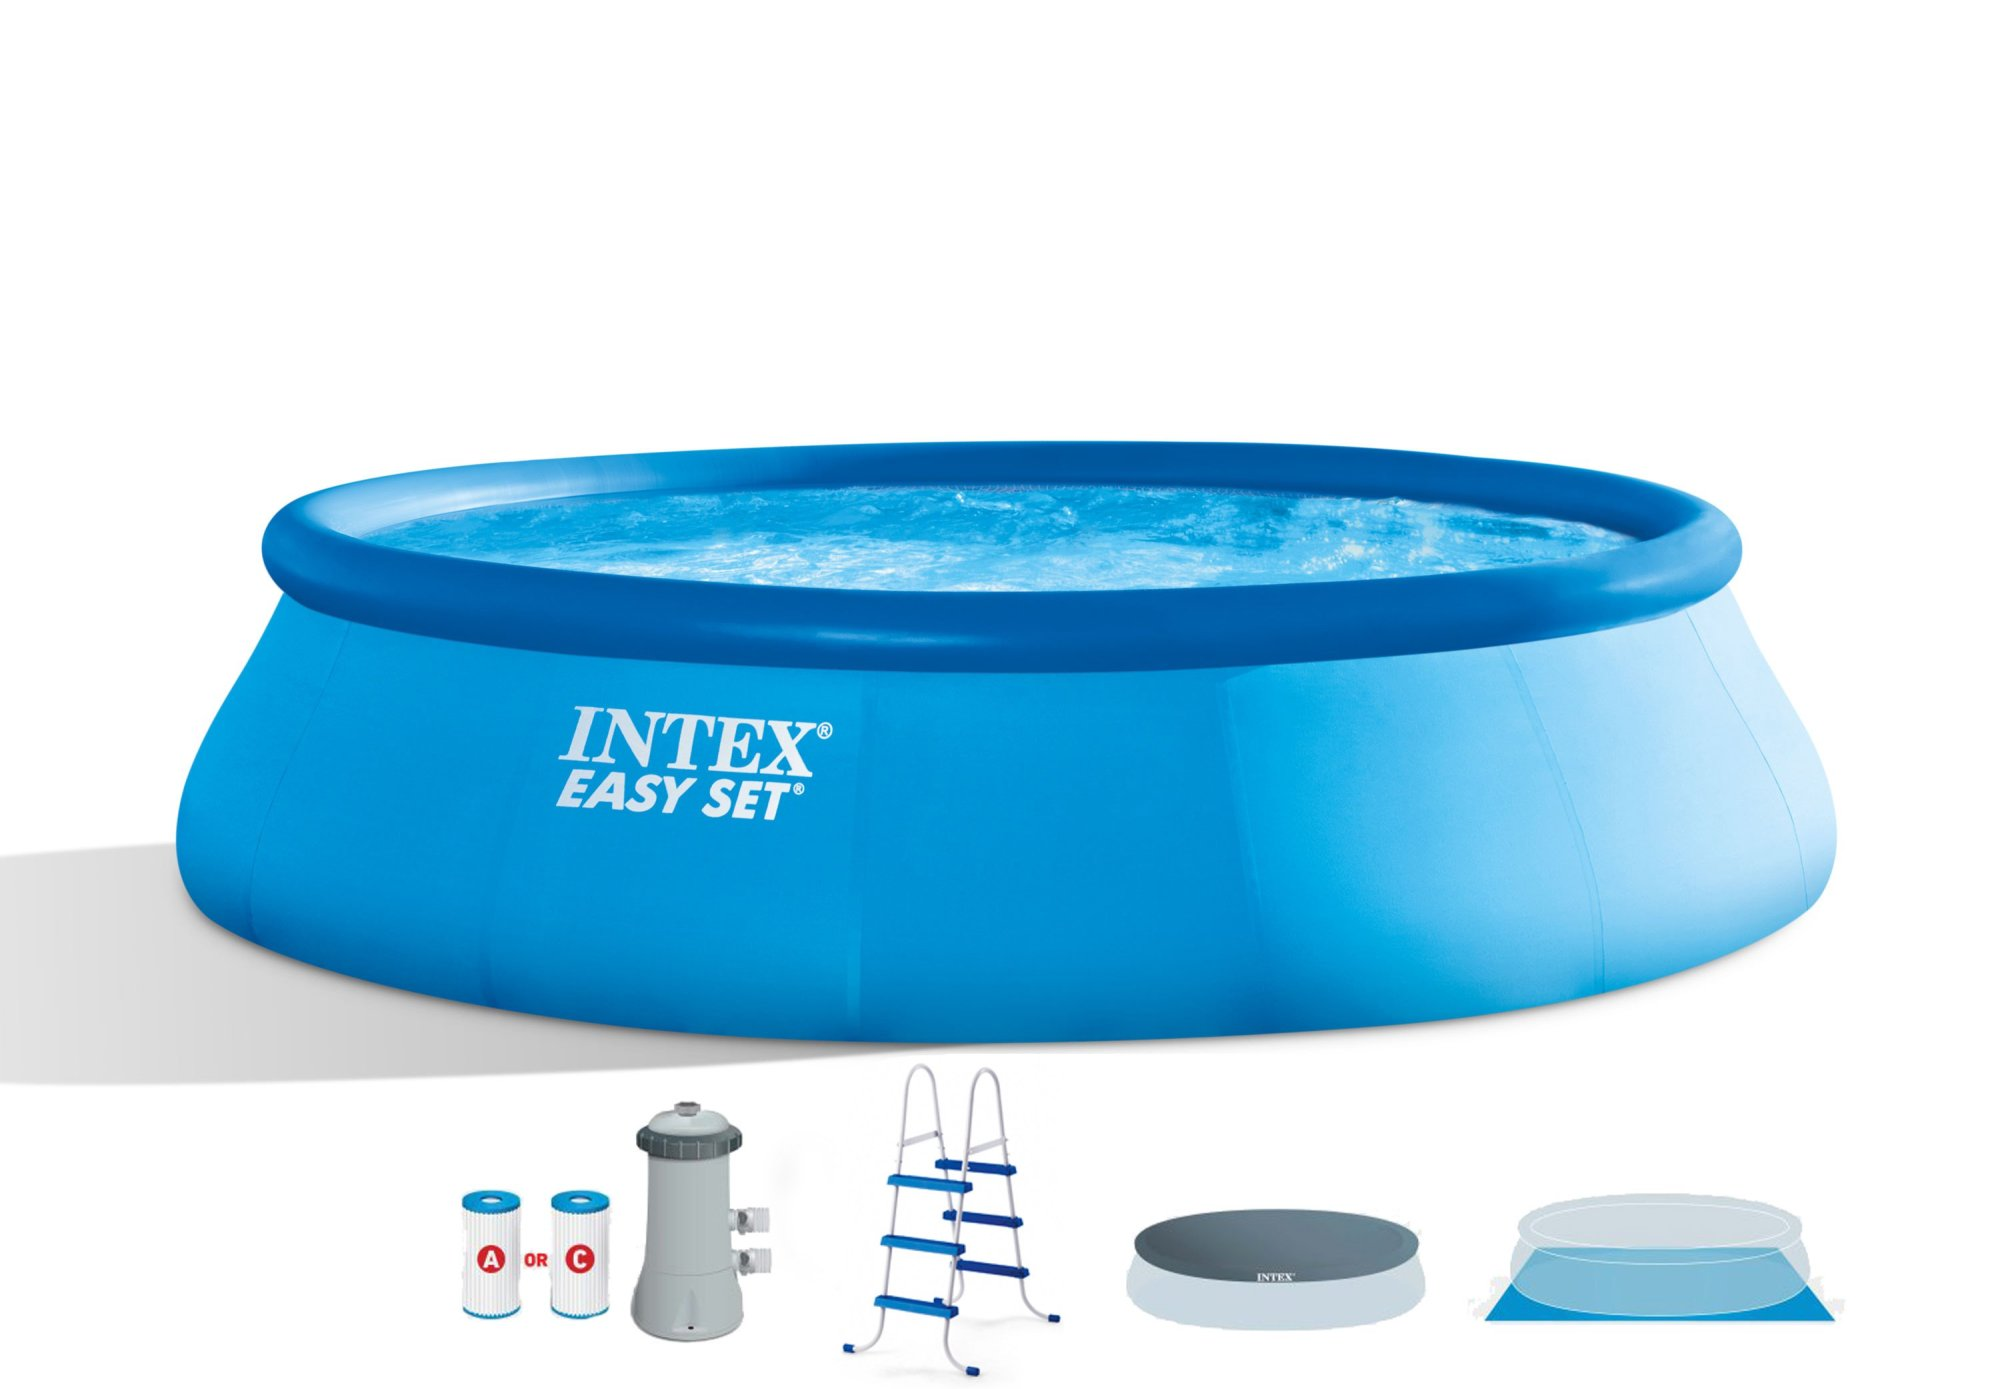 hight resolution of intex 15 x 42 easy set swimming pool complete kit with 1000 gph filter pump